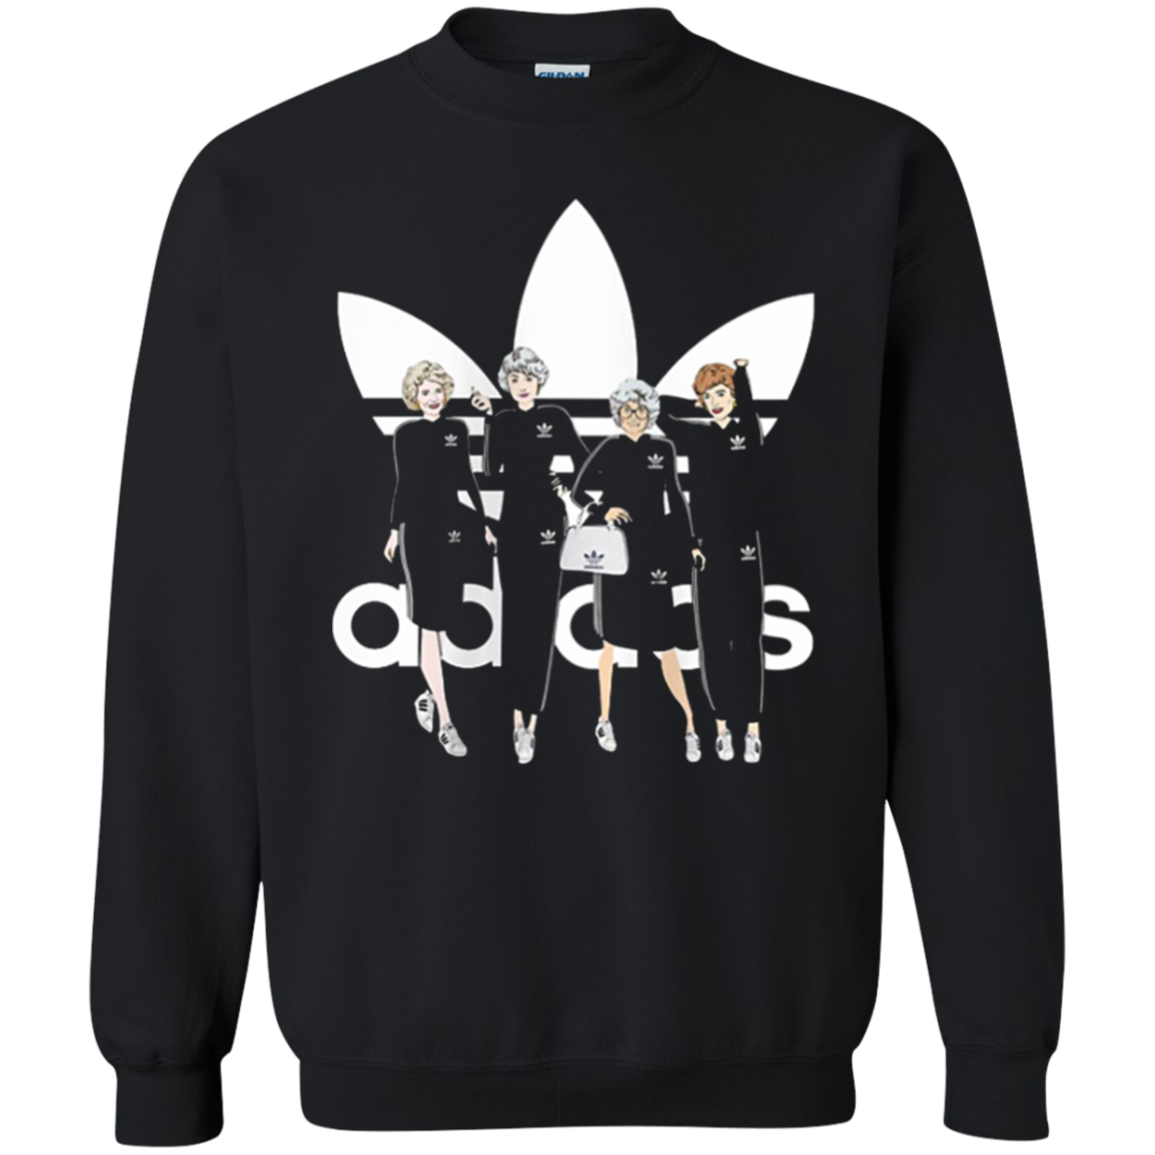 Golden Girls Adidas Sweatshirt